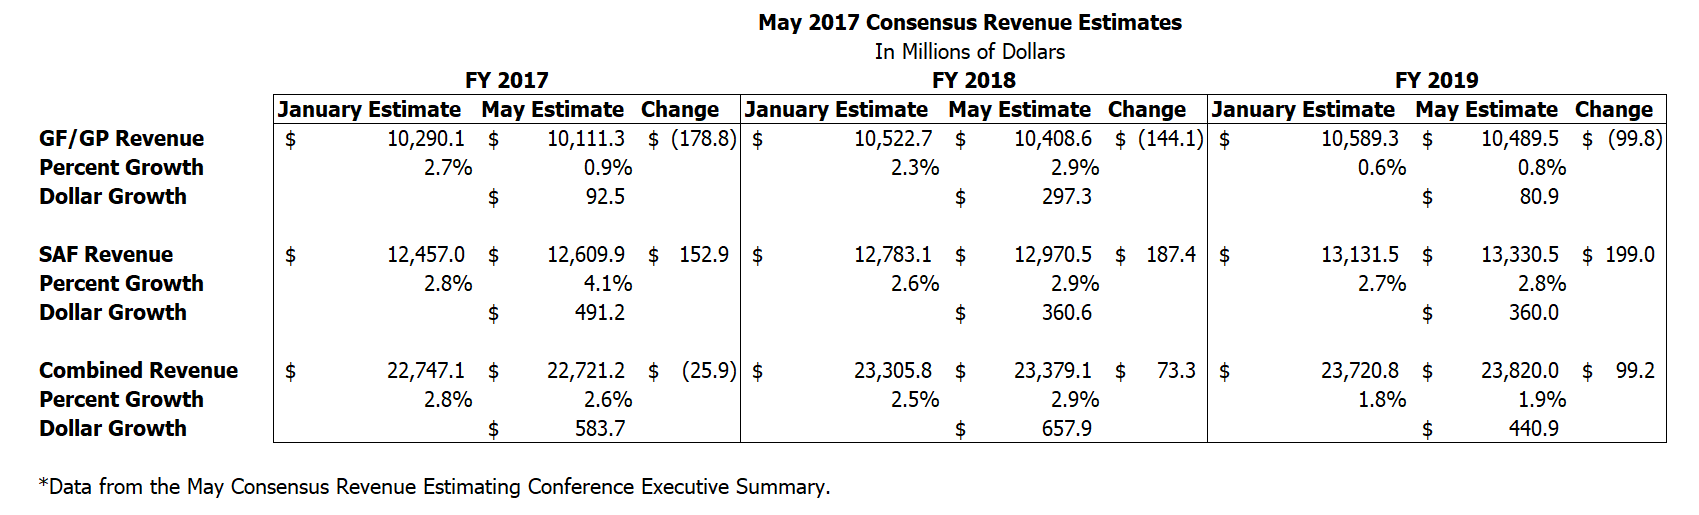 Mays Consensus Revenue Estimating Conference Lowers General Fund